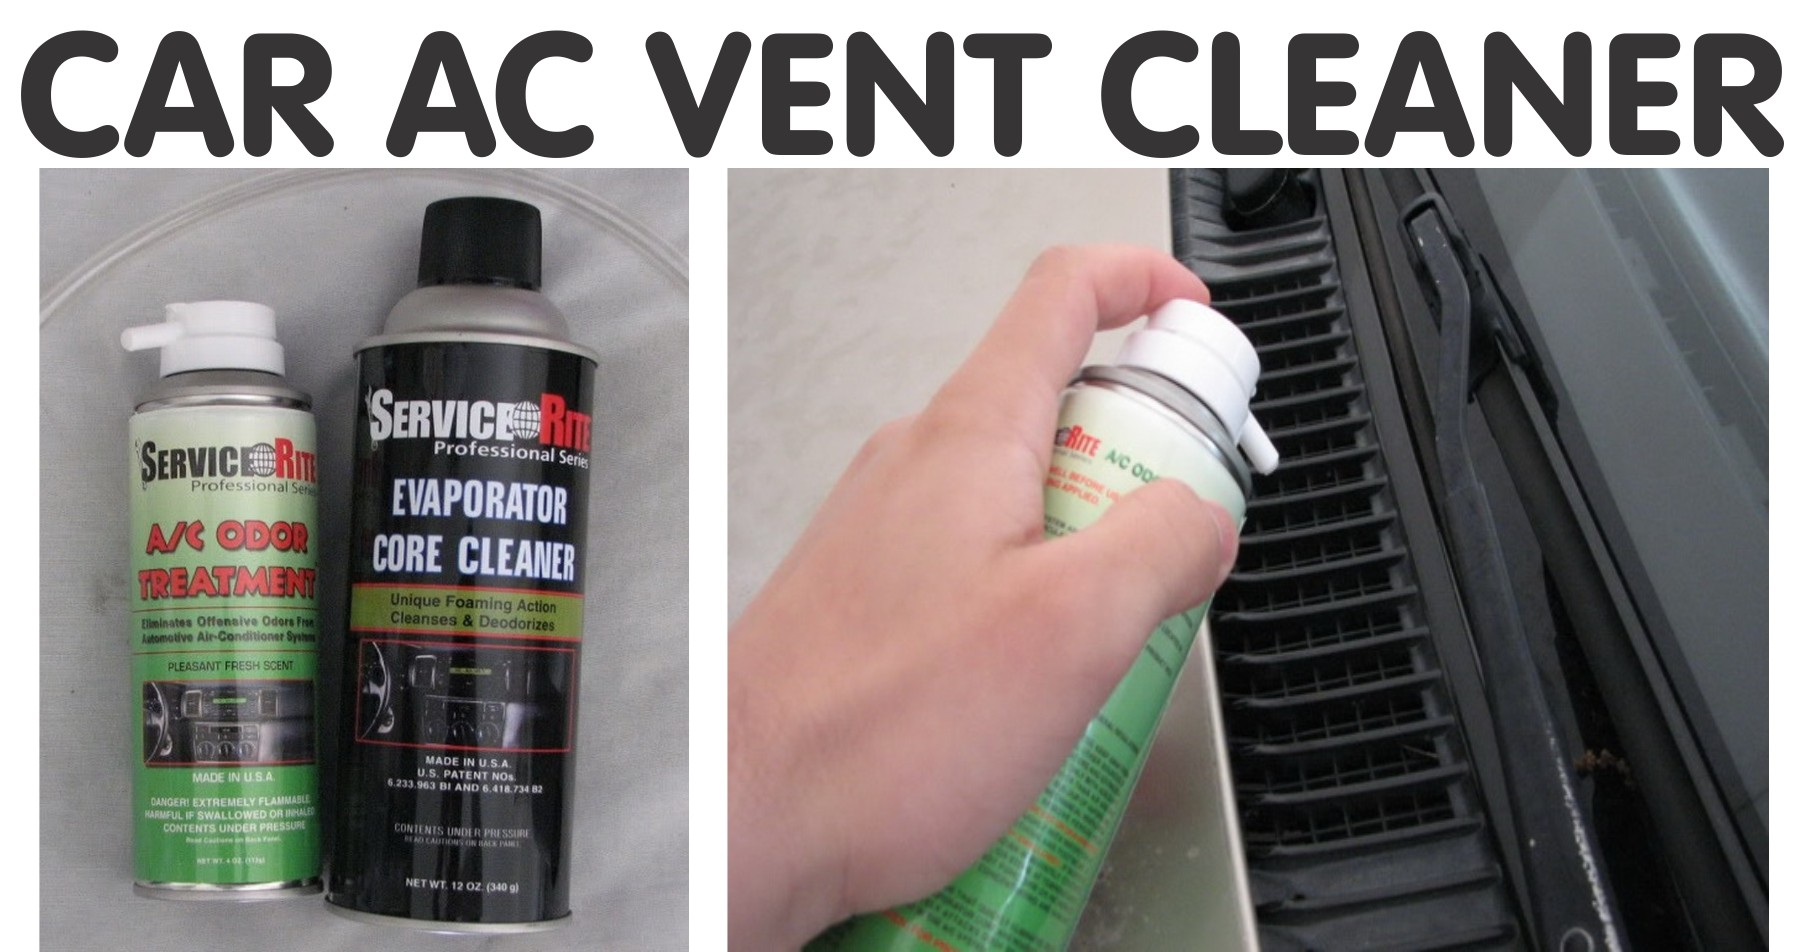 Car Carpet Cleaner For Mold And Mildew